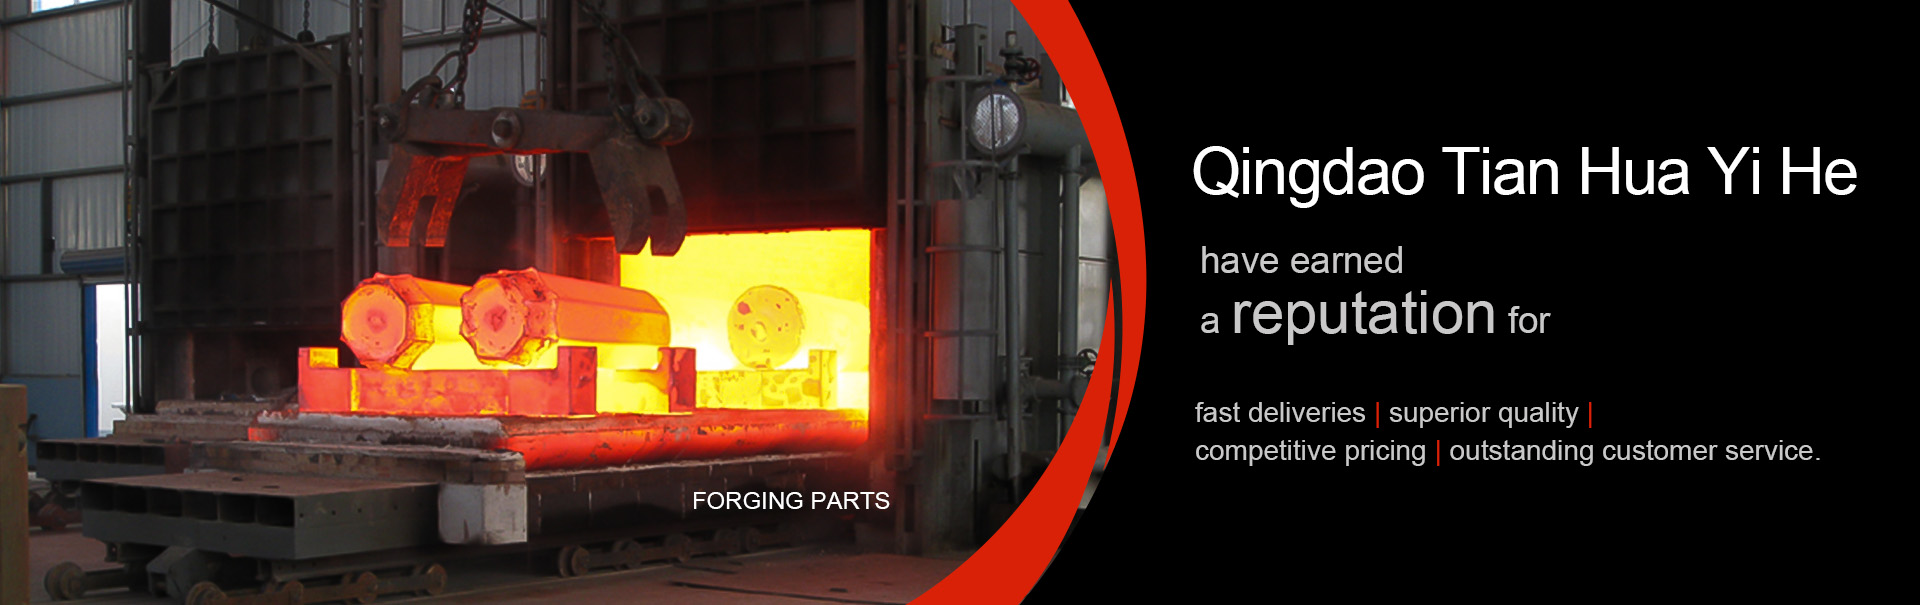 QINGDAO TIANHUA YIHE FOUNDRY FACOTRY